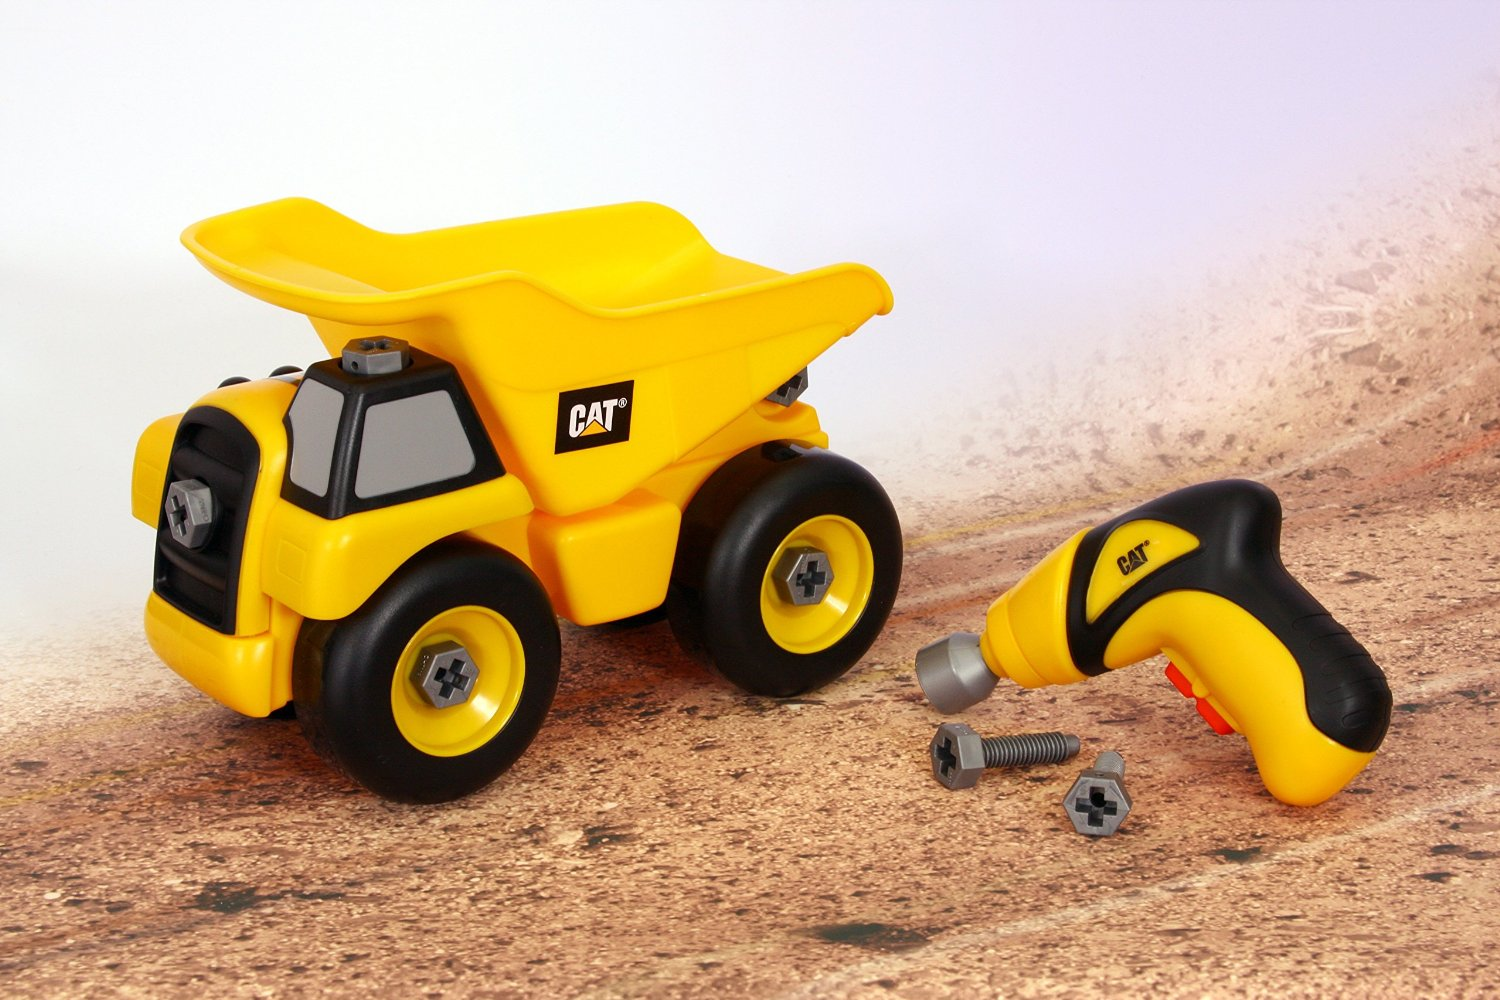 Toy State Caterpillar Construction Take-A-Part Trucks: Dump Truck